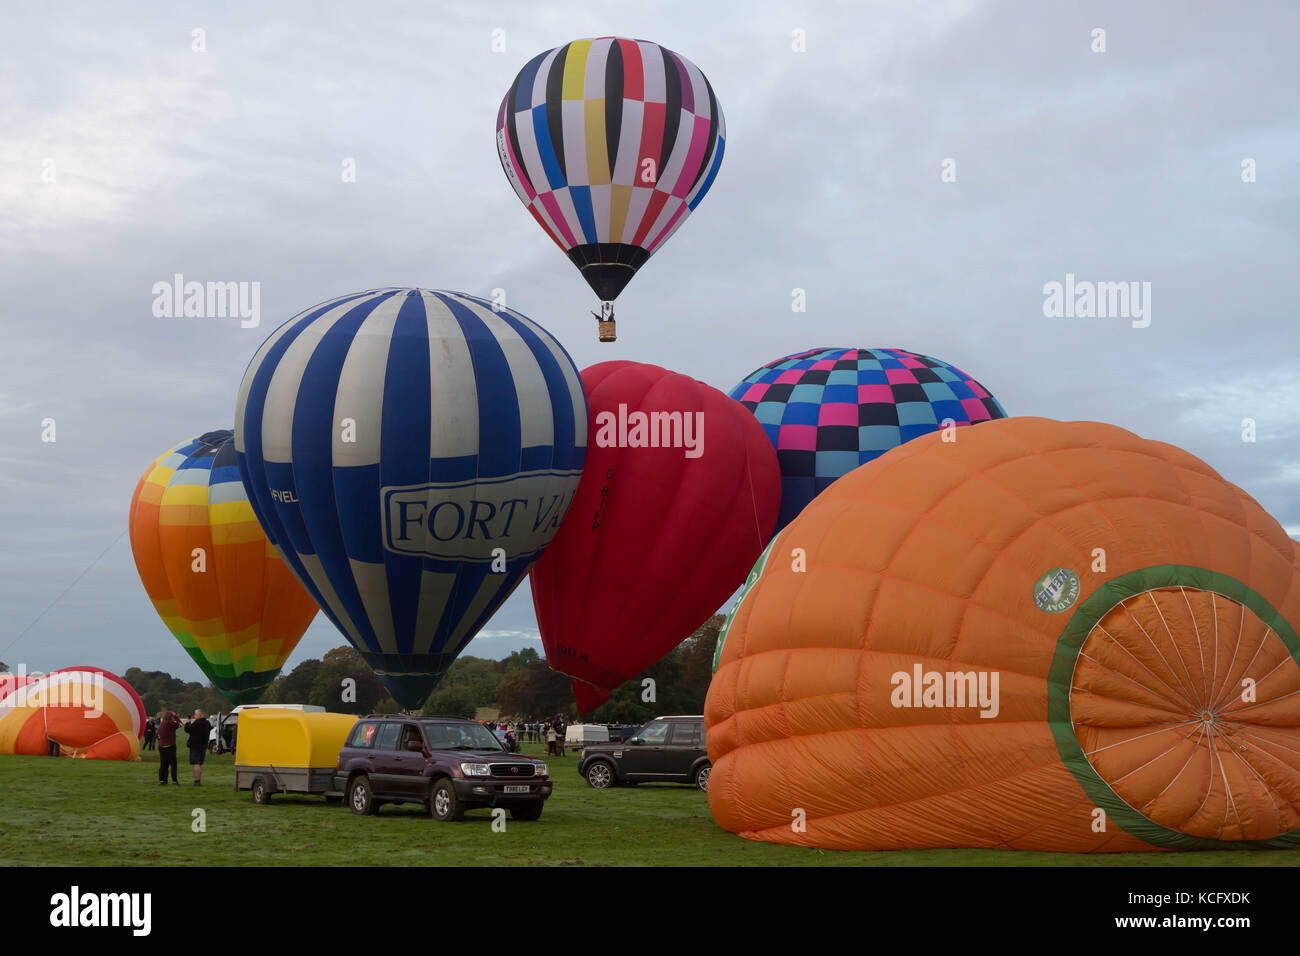 Hot air balloons being inflated and taking off from The Knavesmire York, United Kingdom Stock Photo